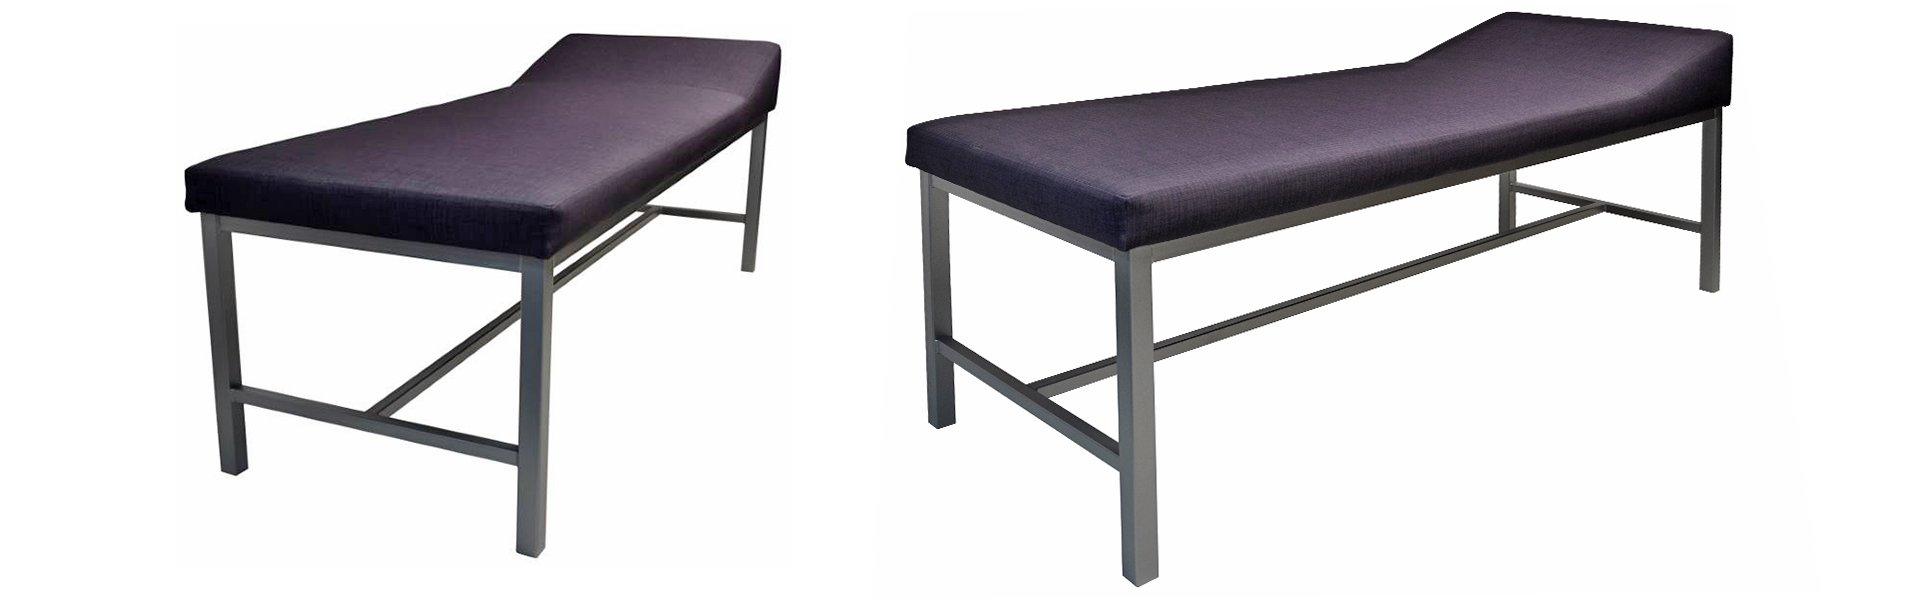 Corilam Exam Tables